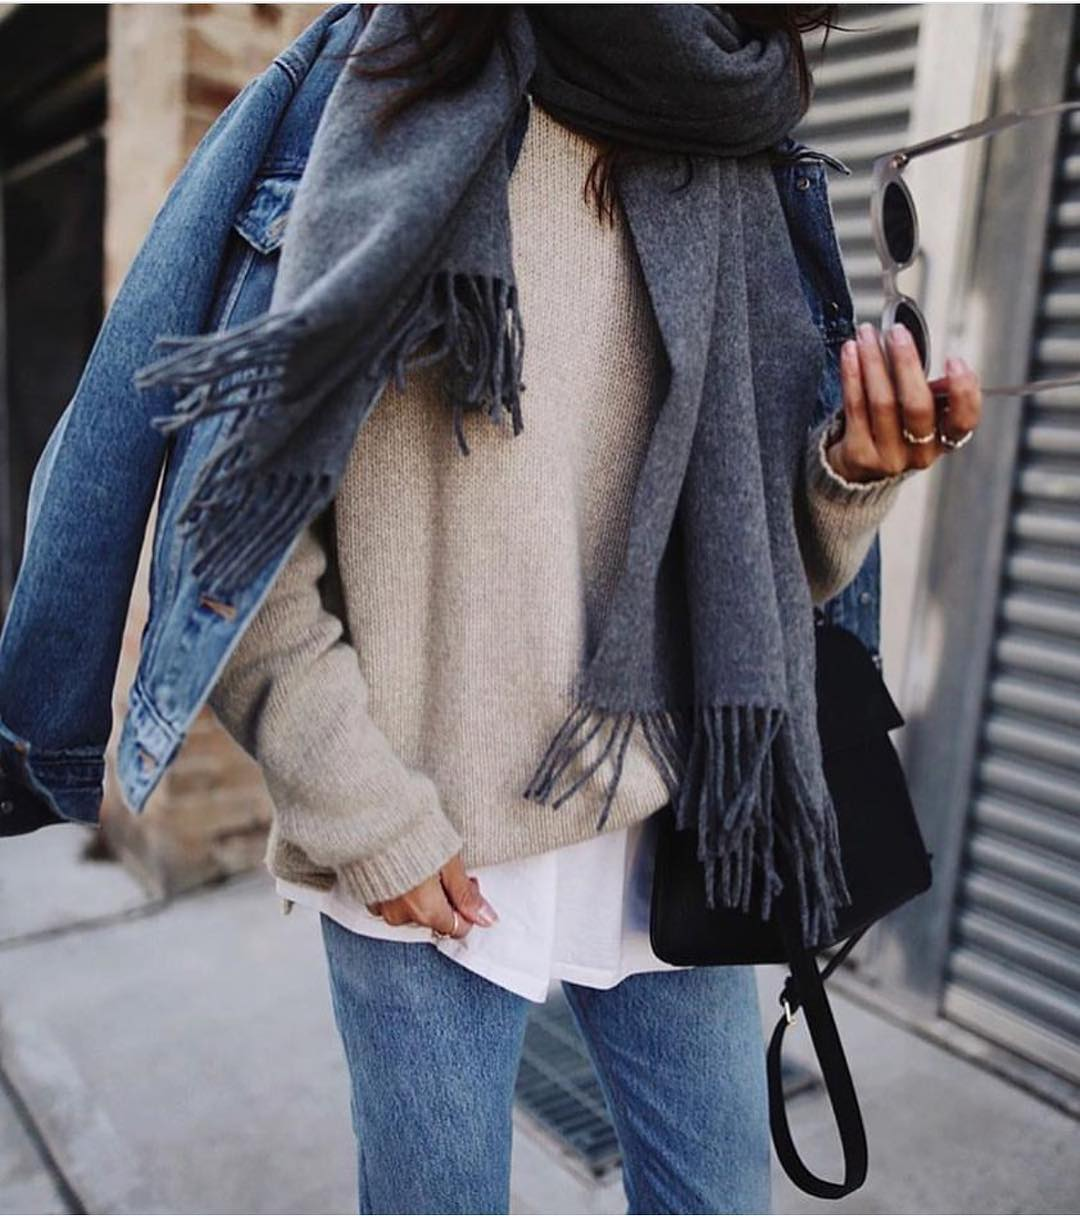 Layered OOTD For Fall: Denim Jacket, Sweater And Scarf 2020